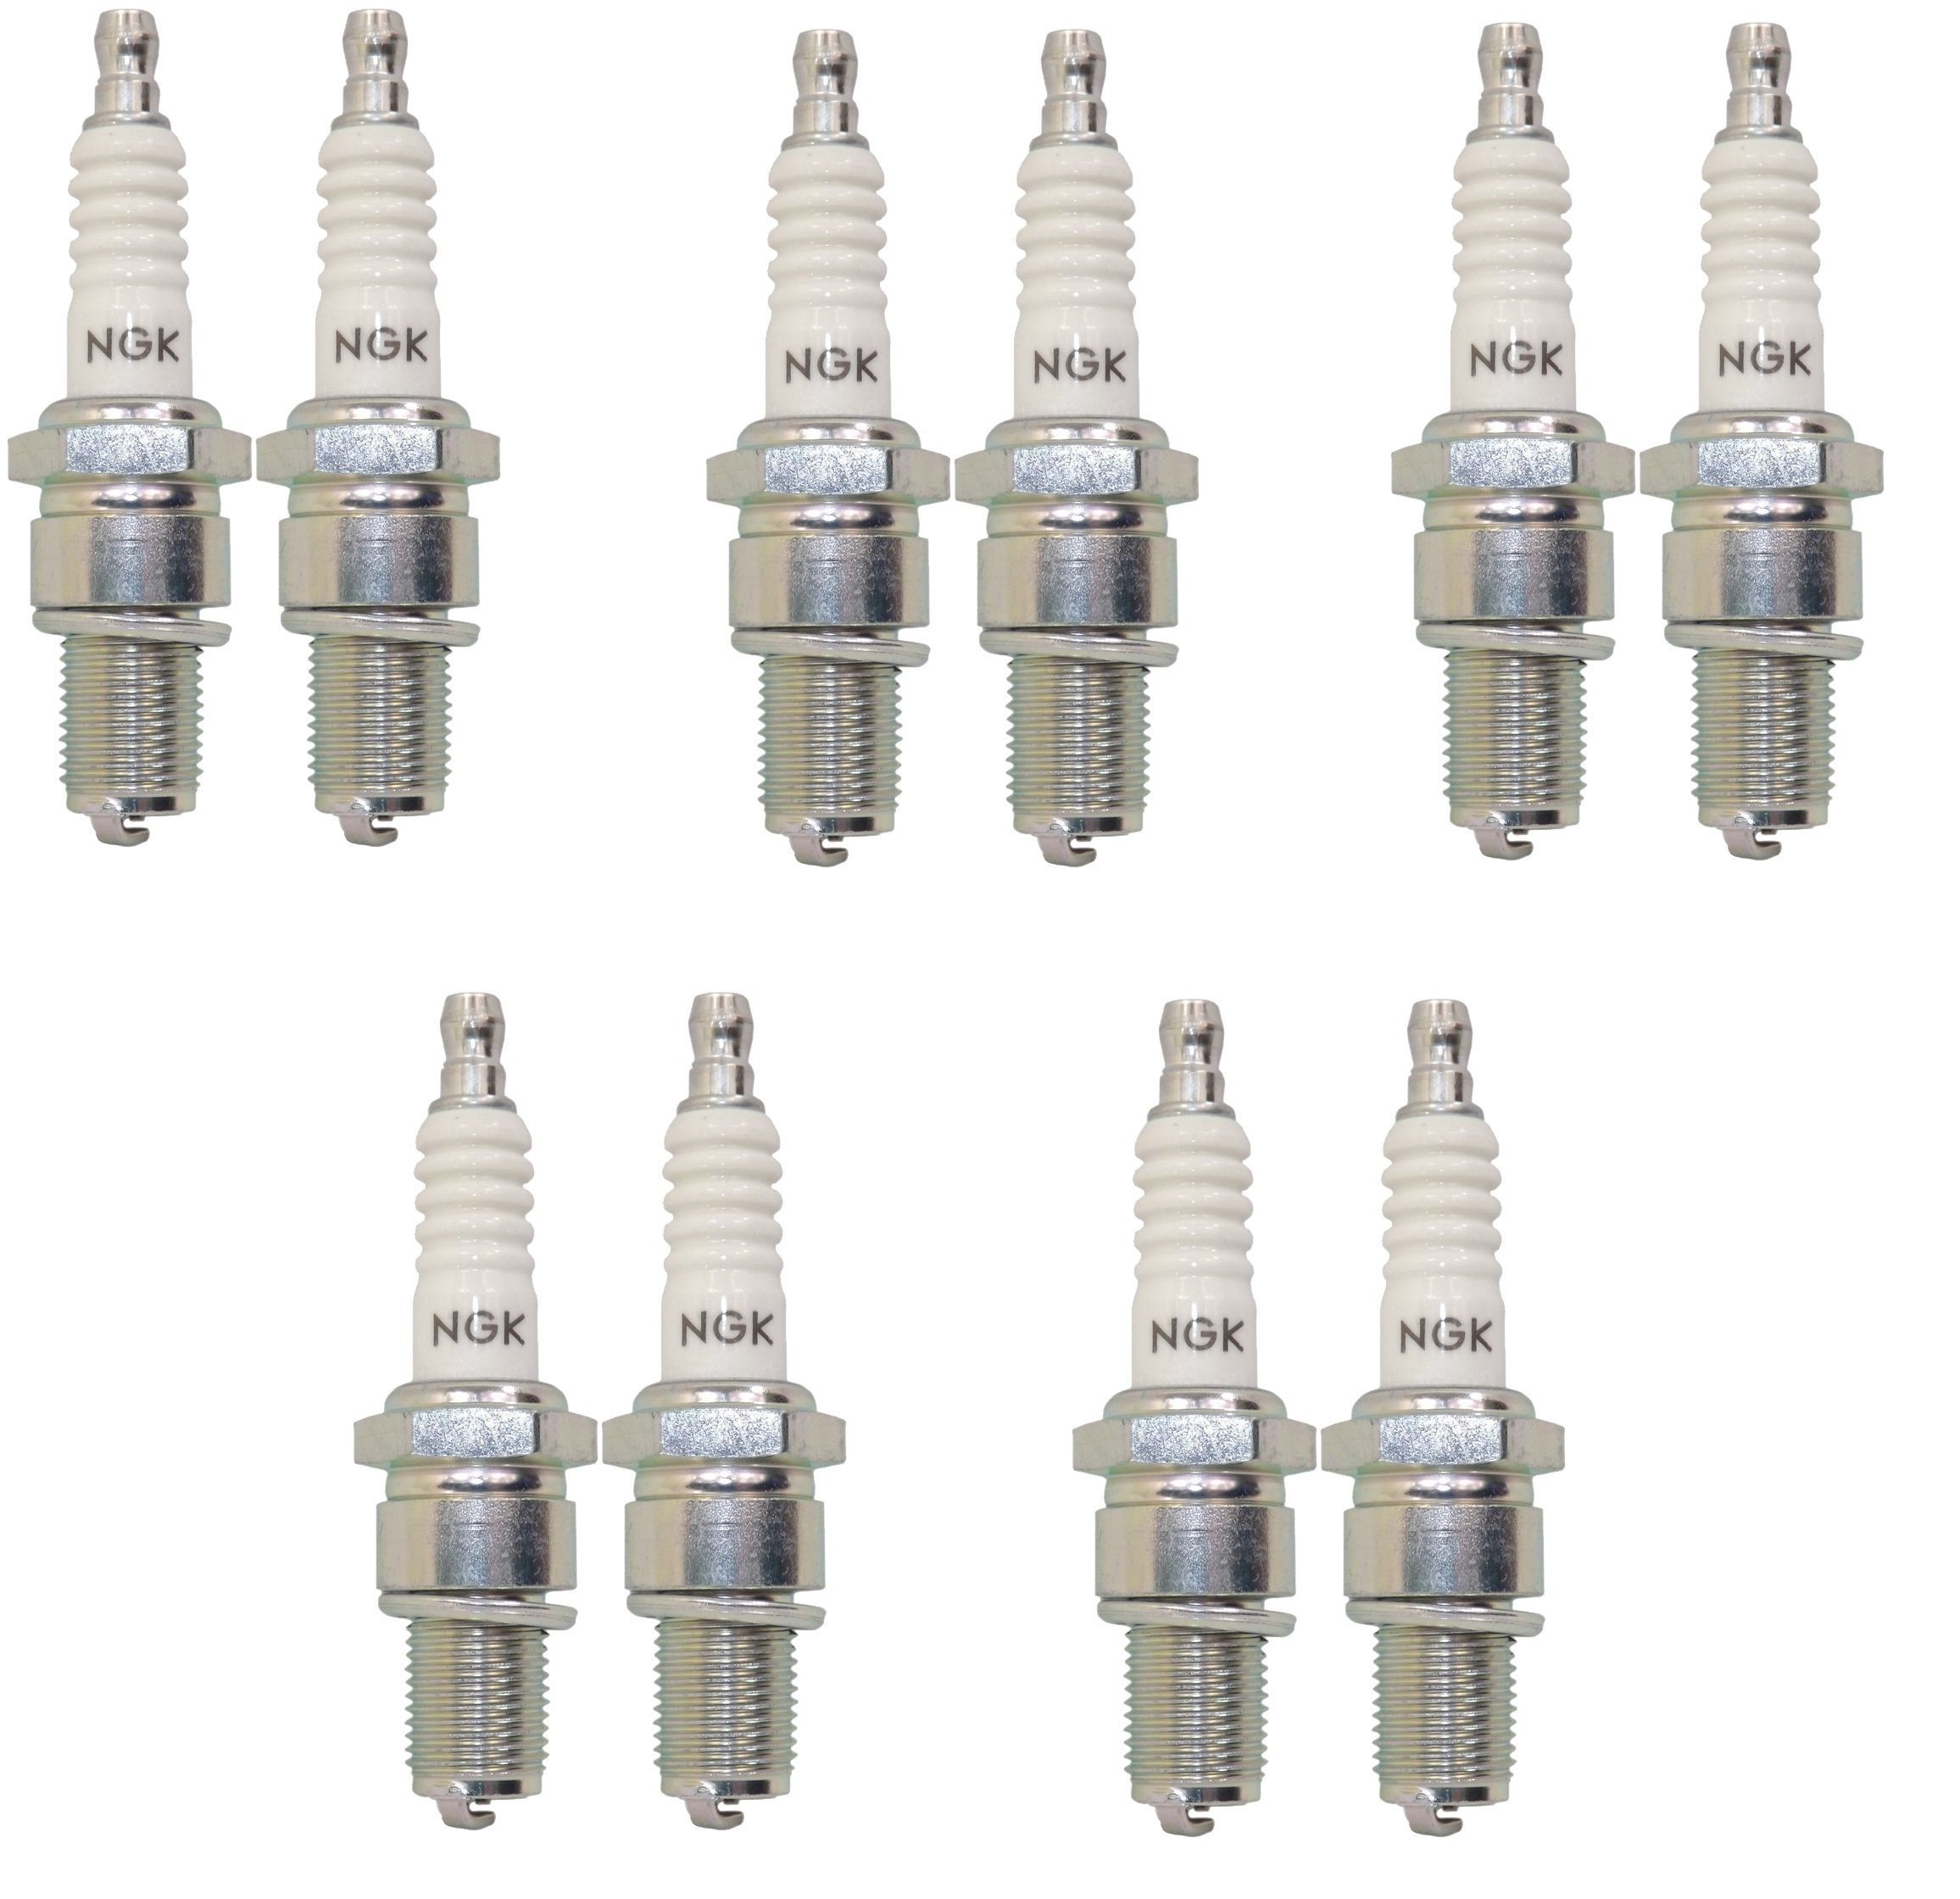 NGK Spark Plug Bpmr7a for Stihl, Husqvarna, Poulan Power Equipment, and More (Sold in Pair) (5)